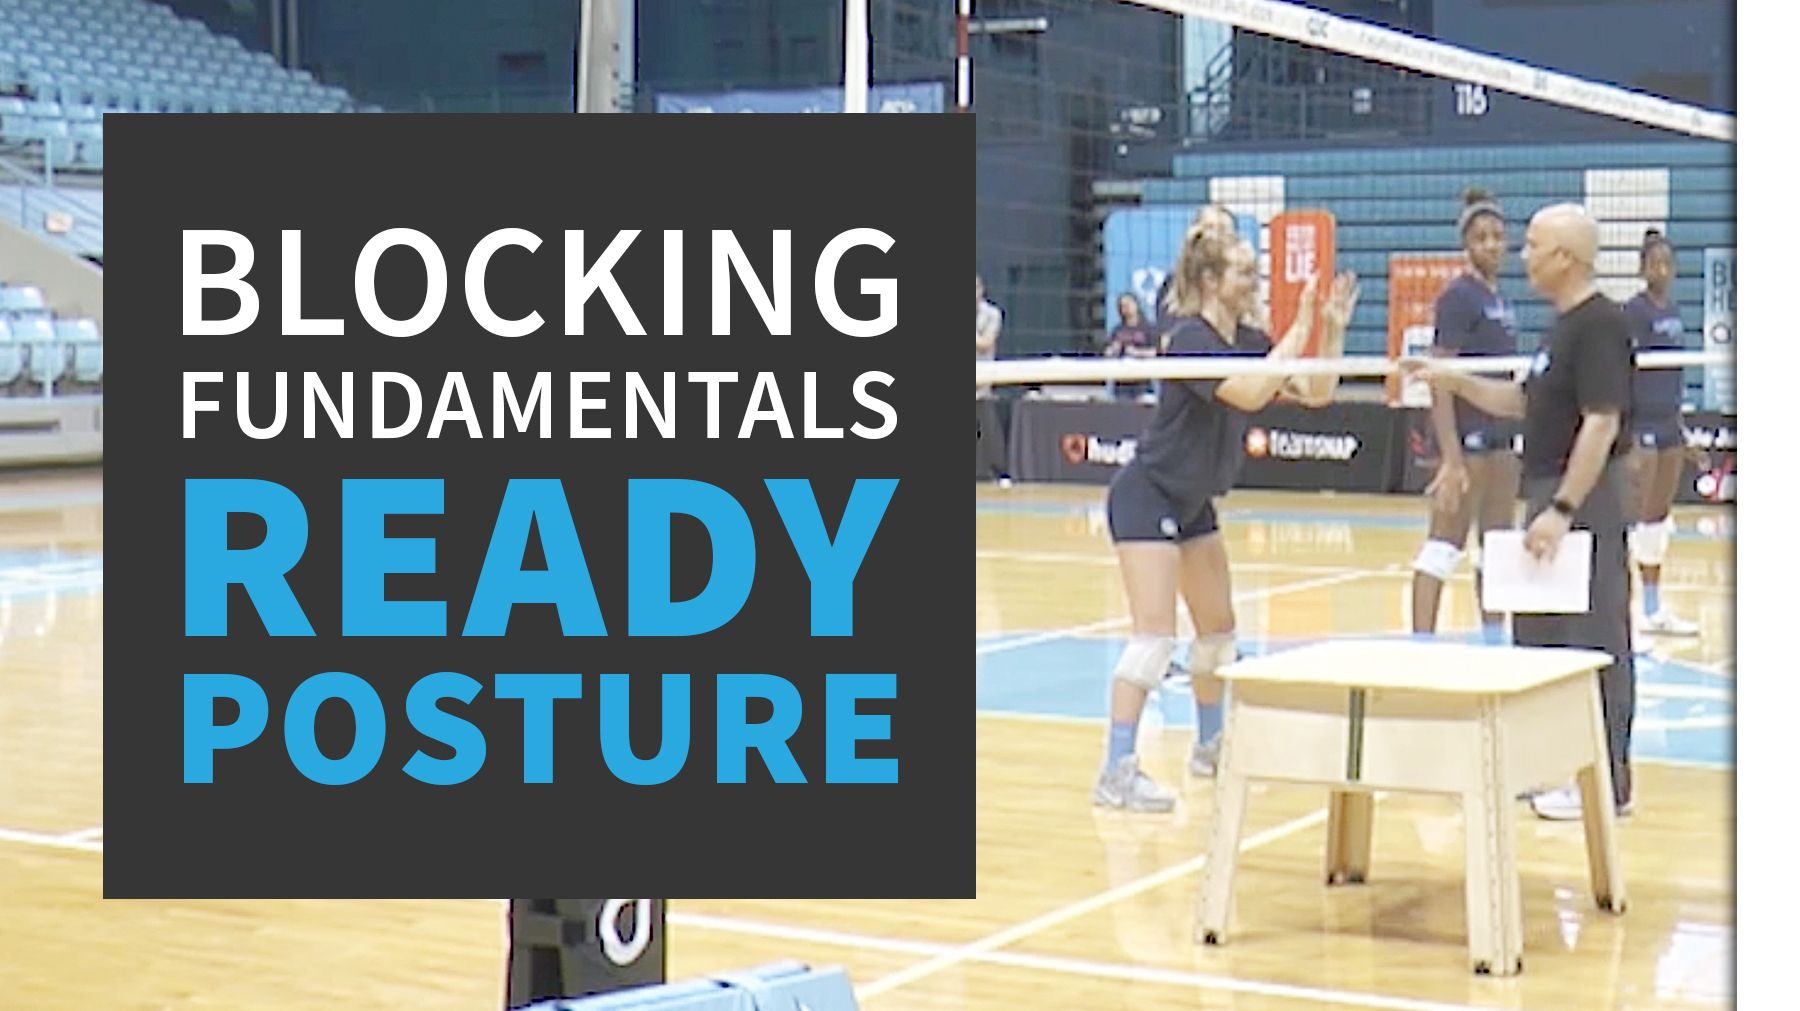 Blocking Fundamentals Ready Posture The Art Of Coaching Volleyball Coaching Volleyball Volleyball Skills Volleyball Practice